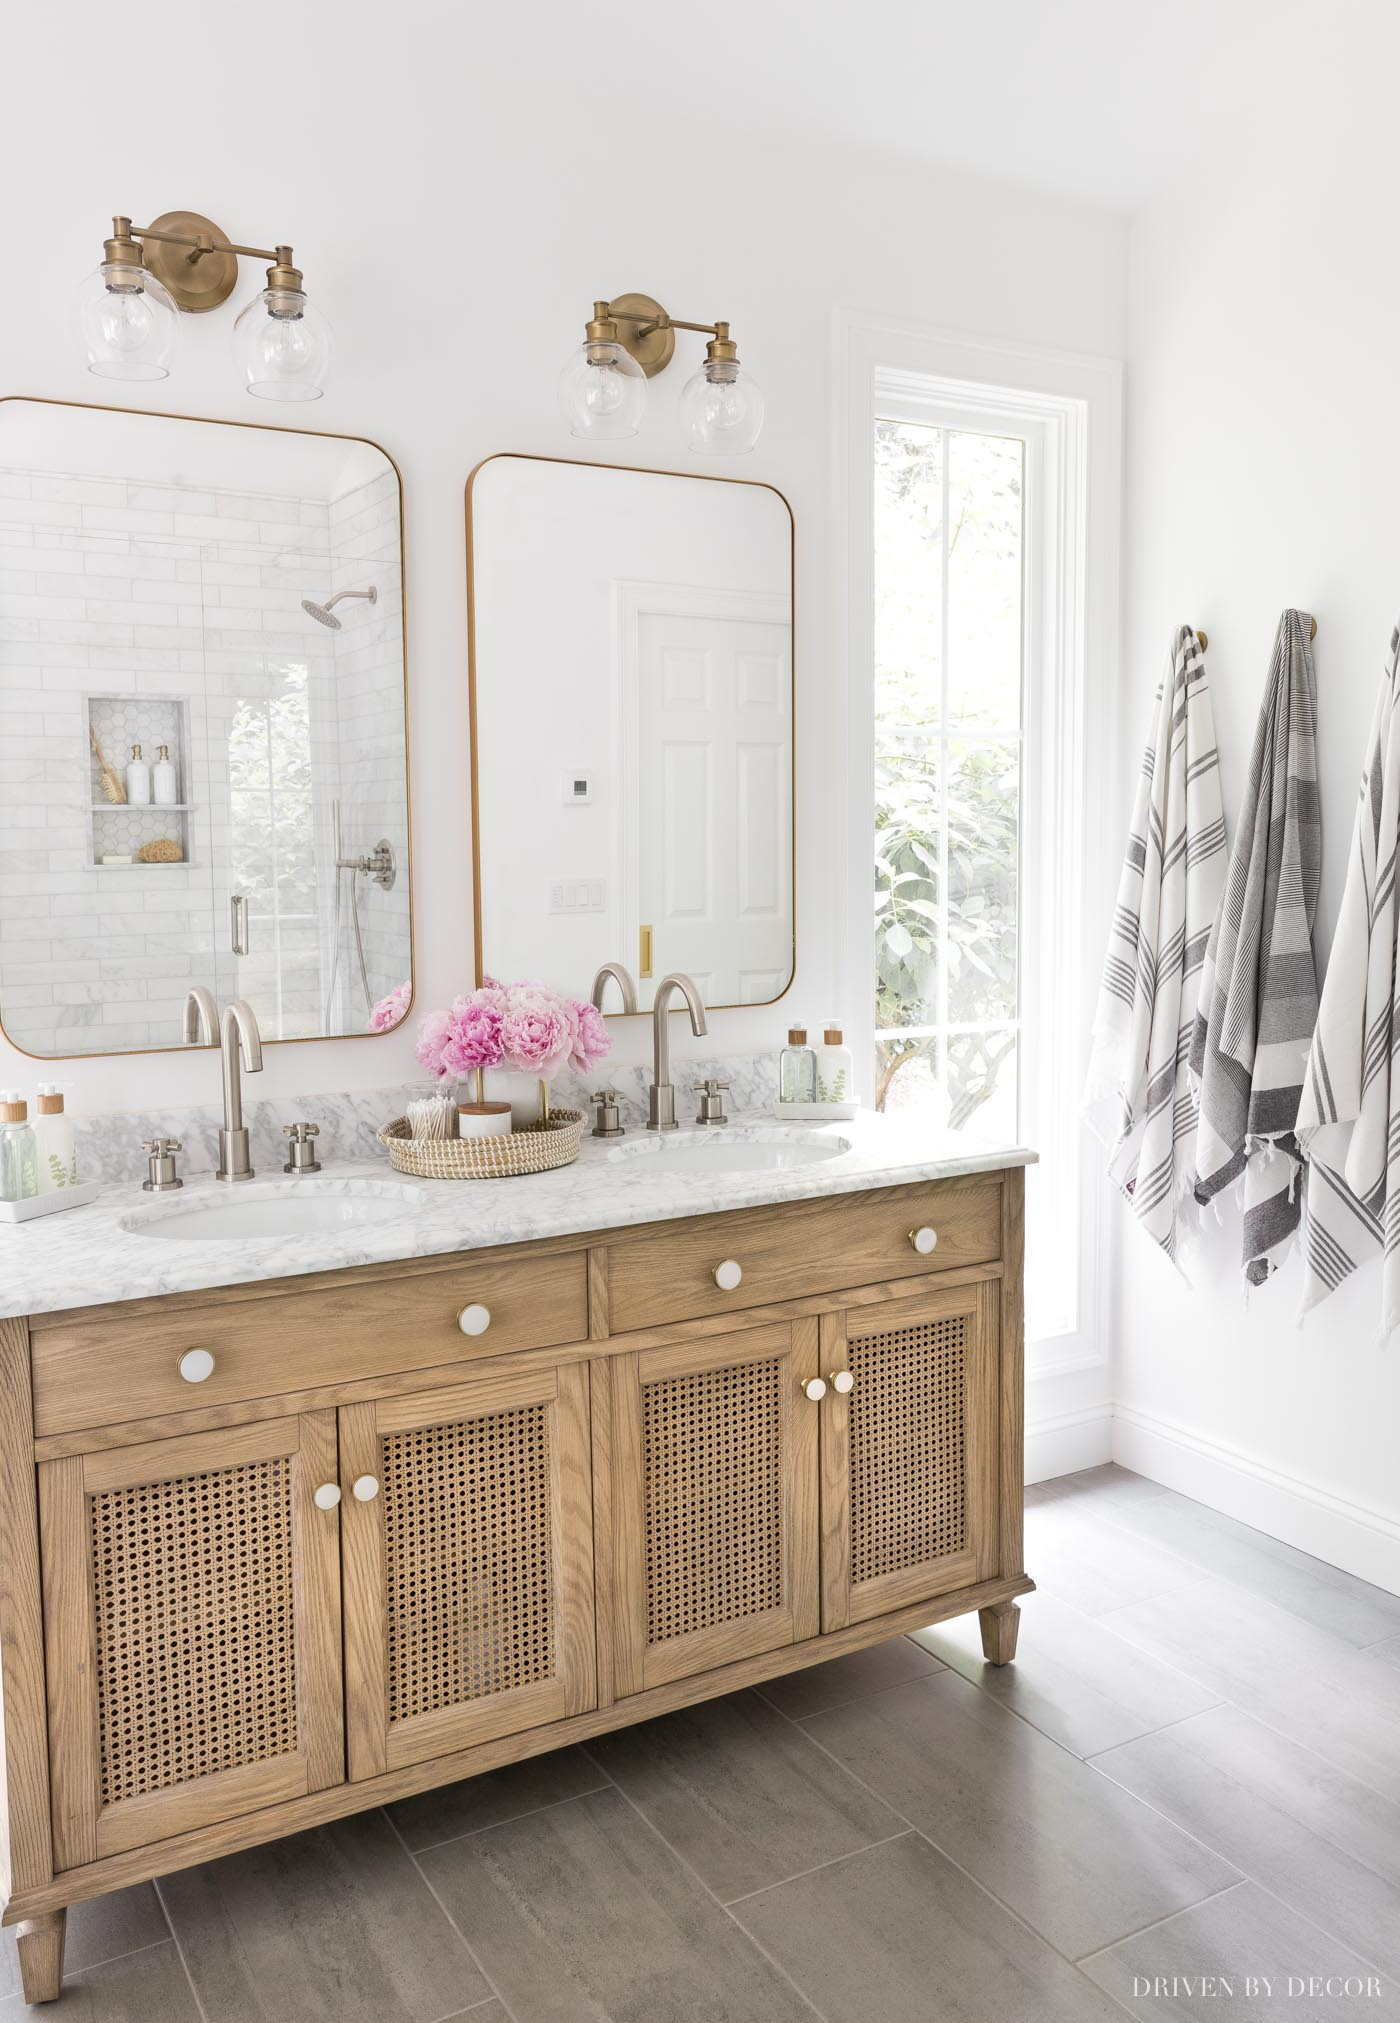 I love the white color in this bathroom - Benjamin Moore Chantilly Lace